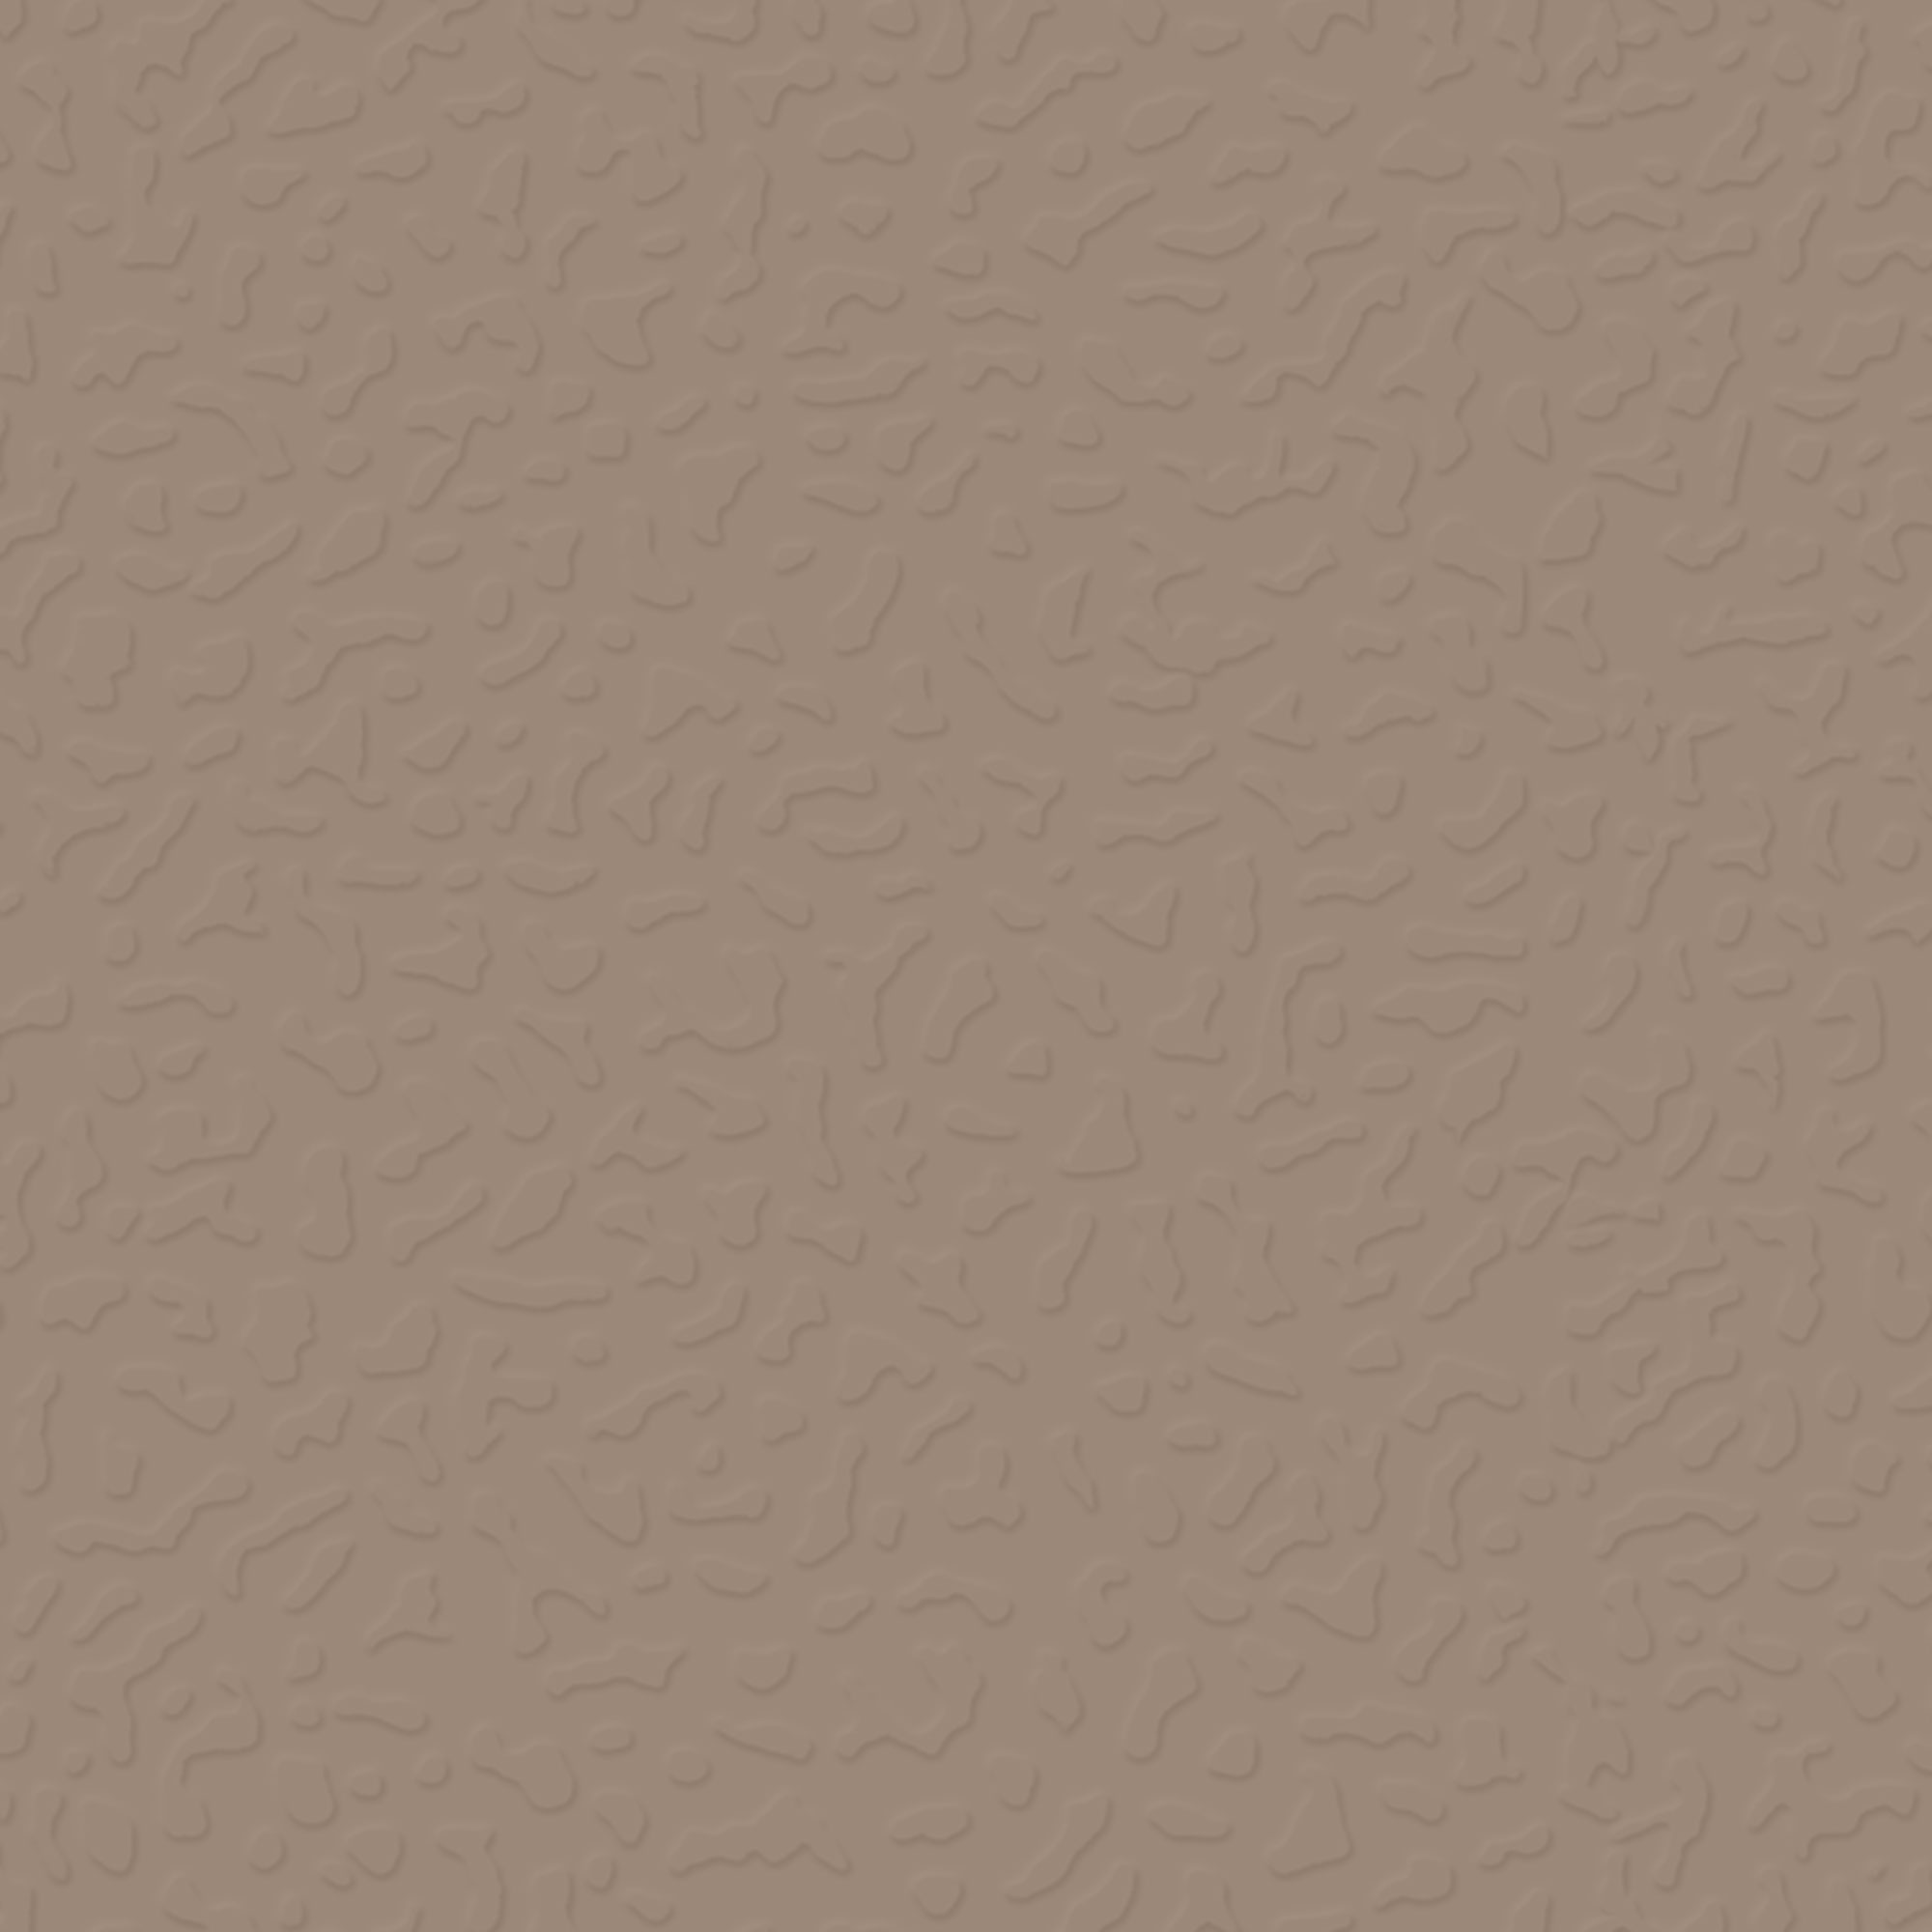 Roppe Rubber Tile 900 - Textured Design (993) Sandstone LB996171